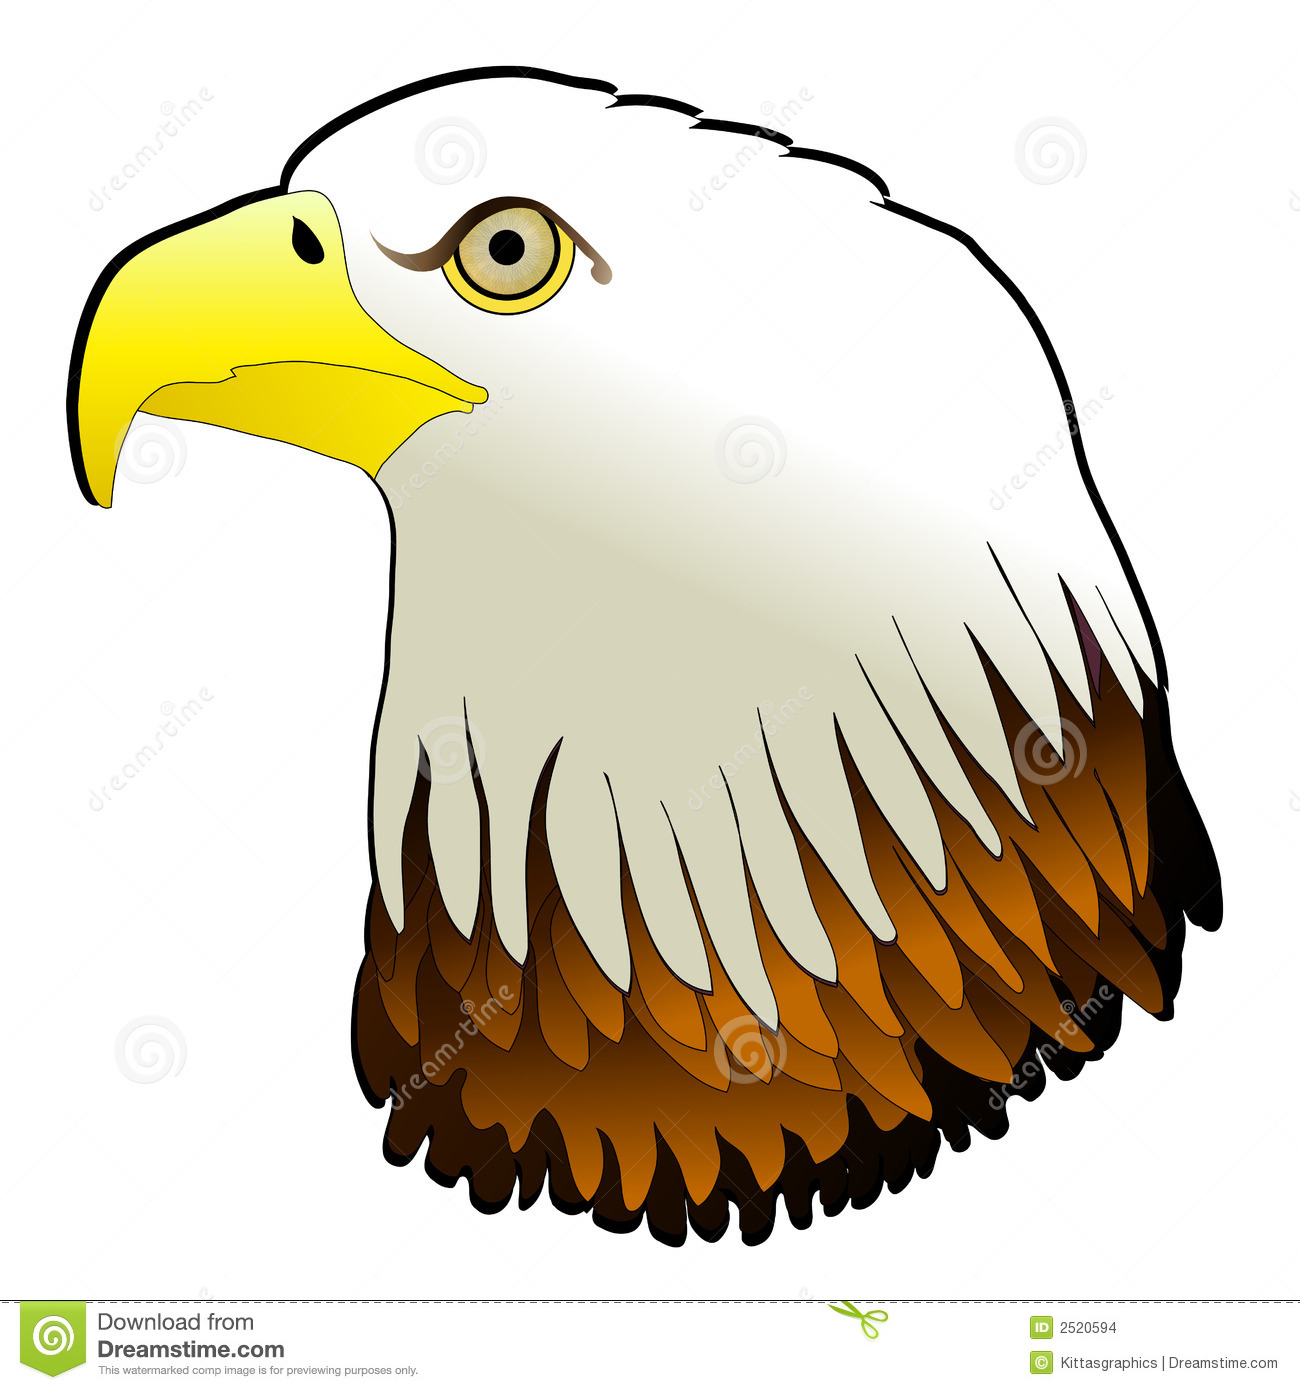 Bald eagle clipart images picture free download Baby Eagle Clipart | Free download best Baby Eagle Clipart on ... picture free download